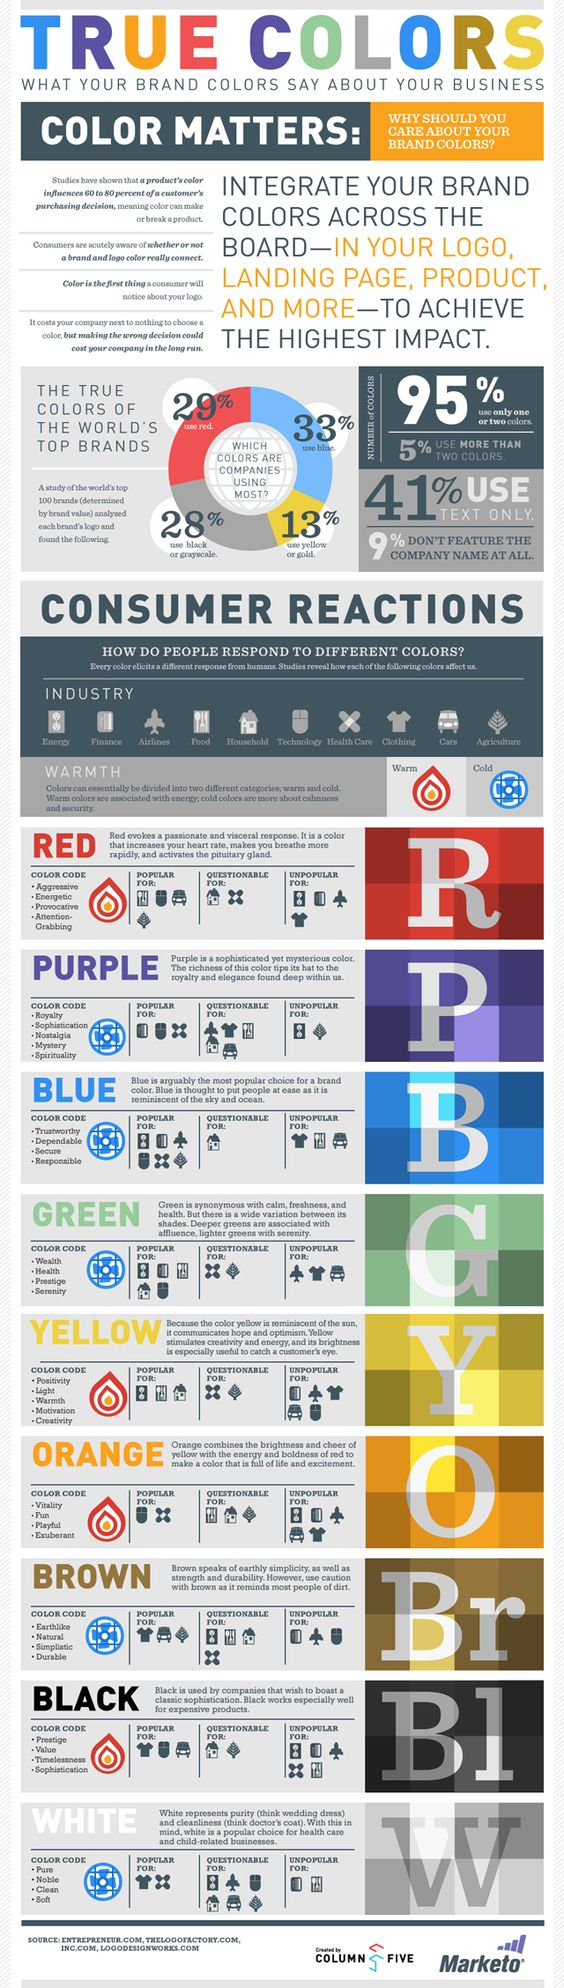 Consumer reactions to Color